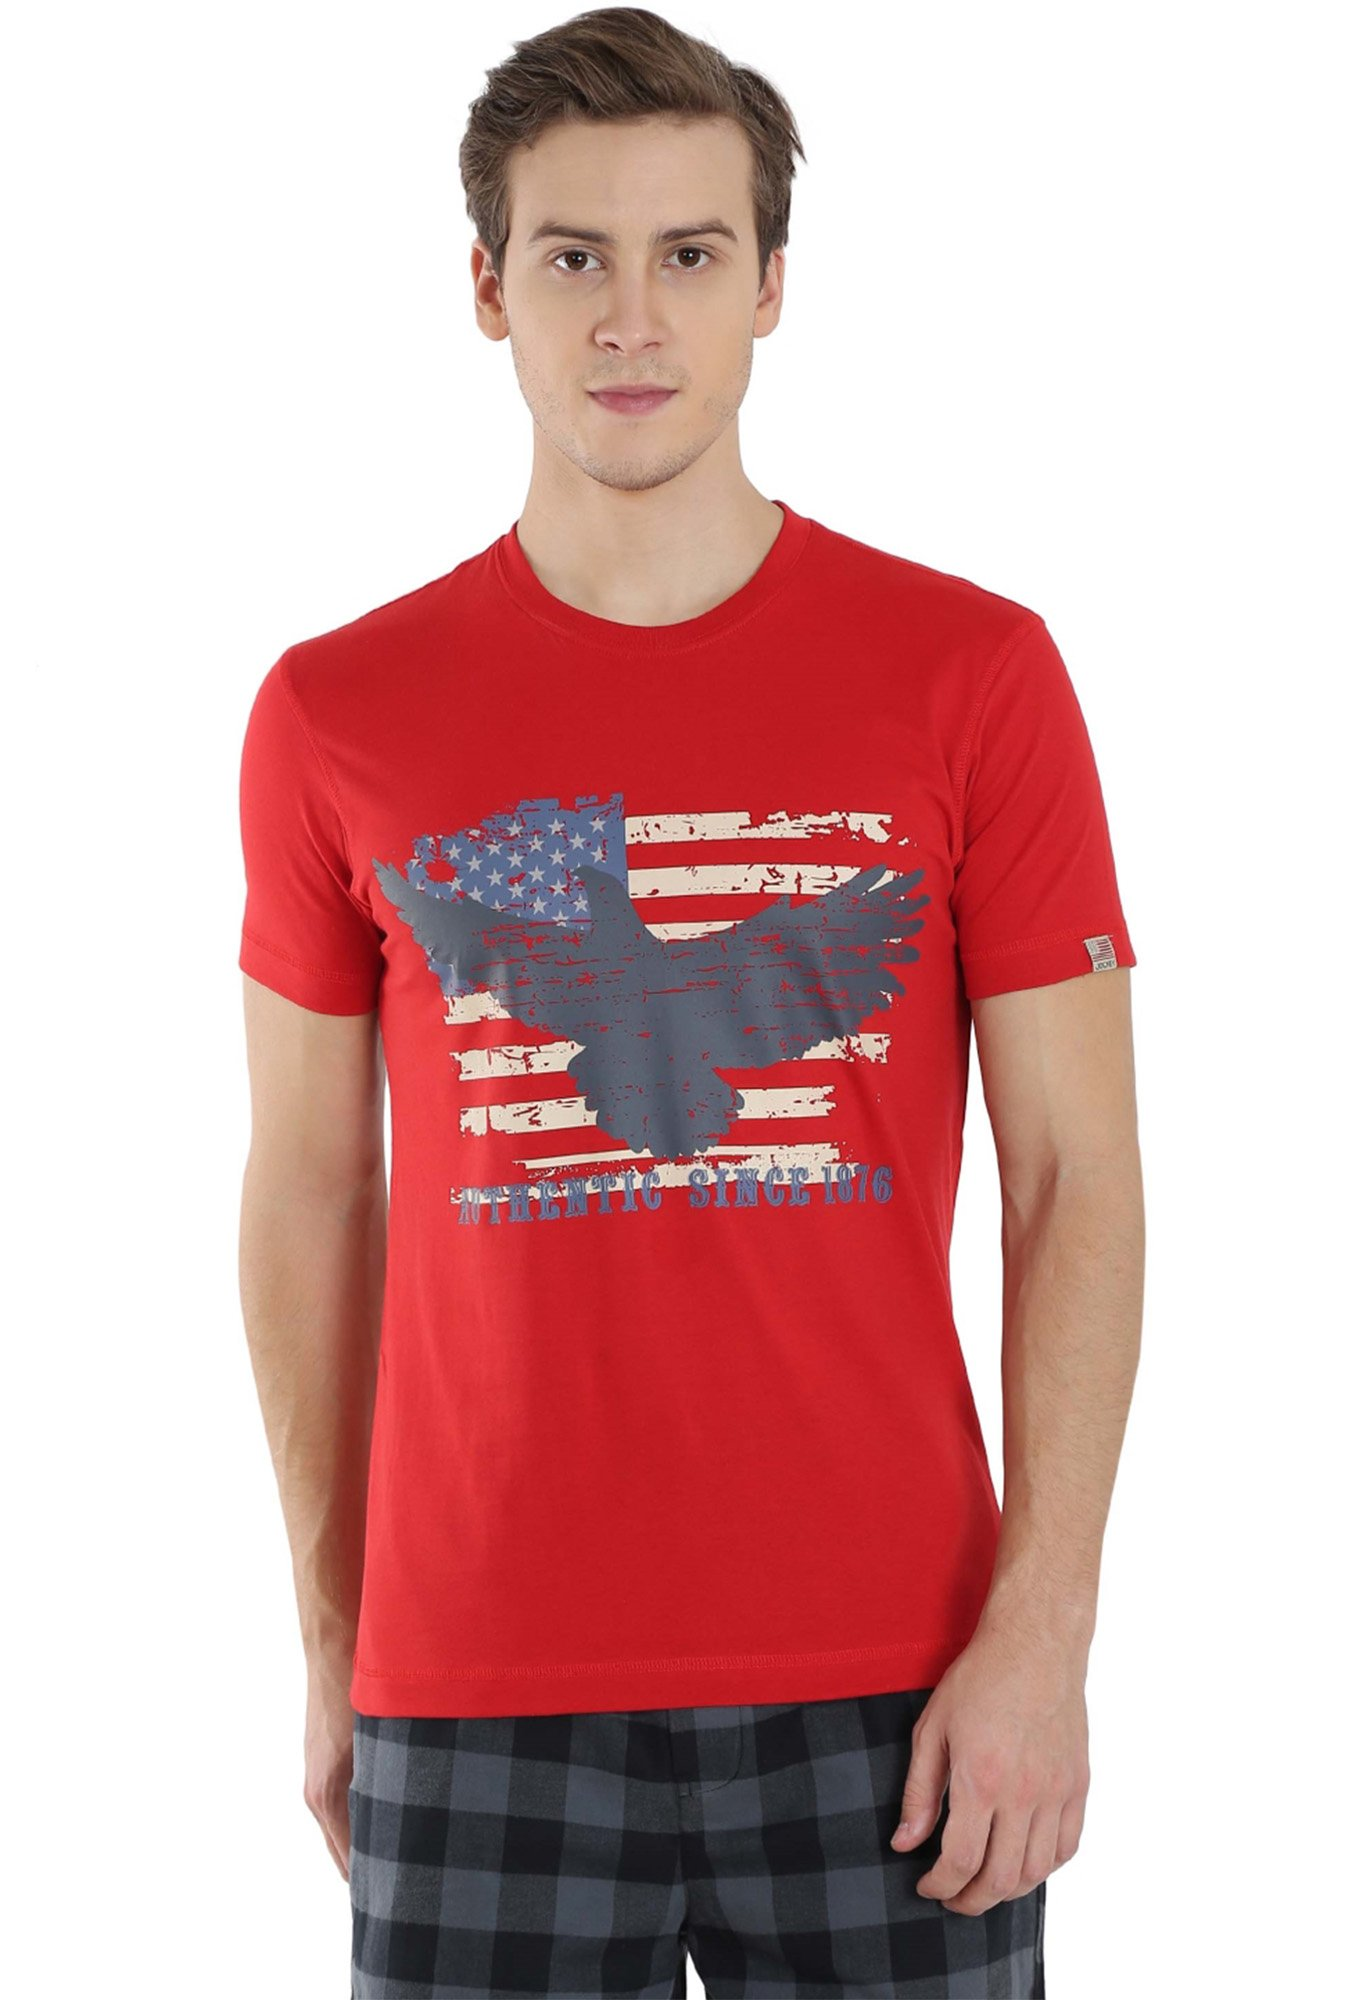 29c3f40bbab Buy Jockey Cherry Red Printed T-Shirt - US81 for Men Online @ Tata ...